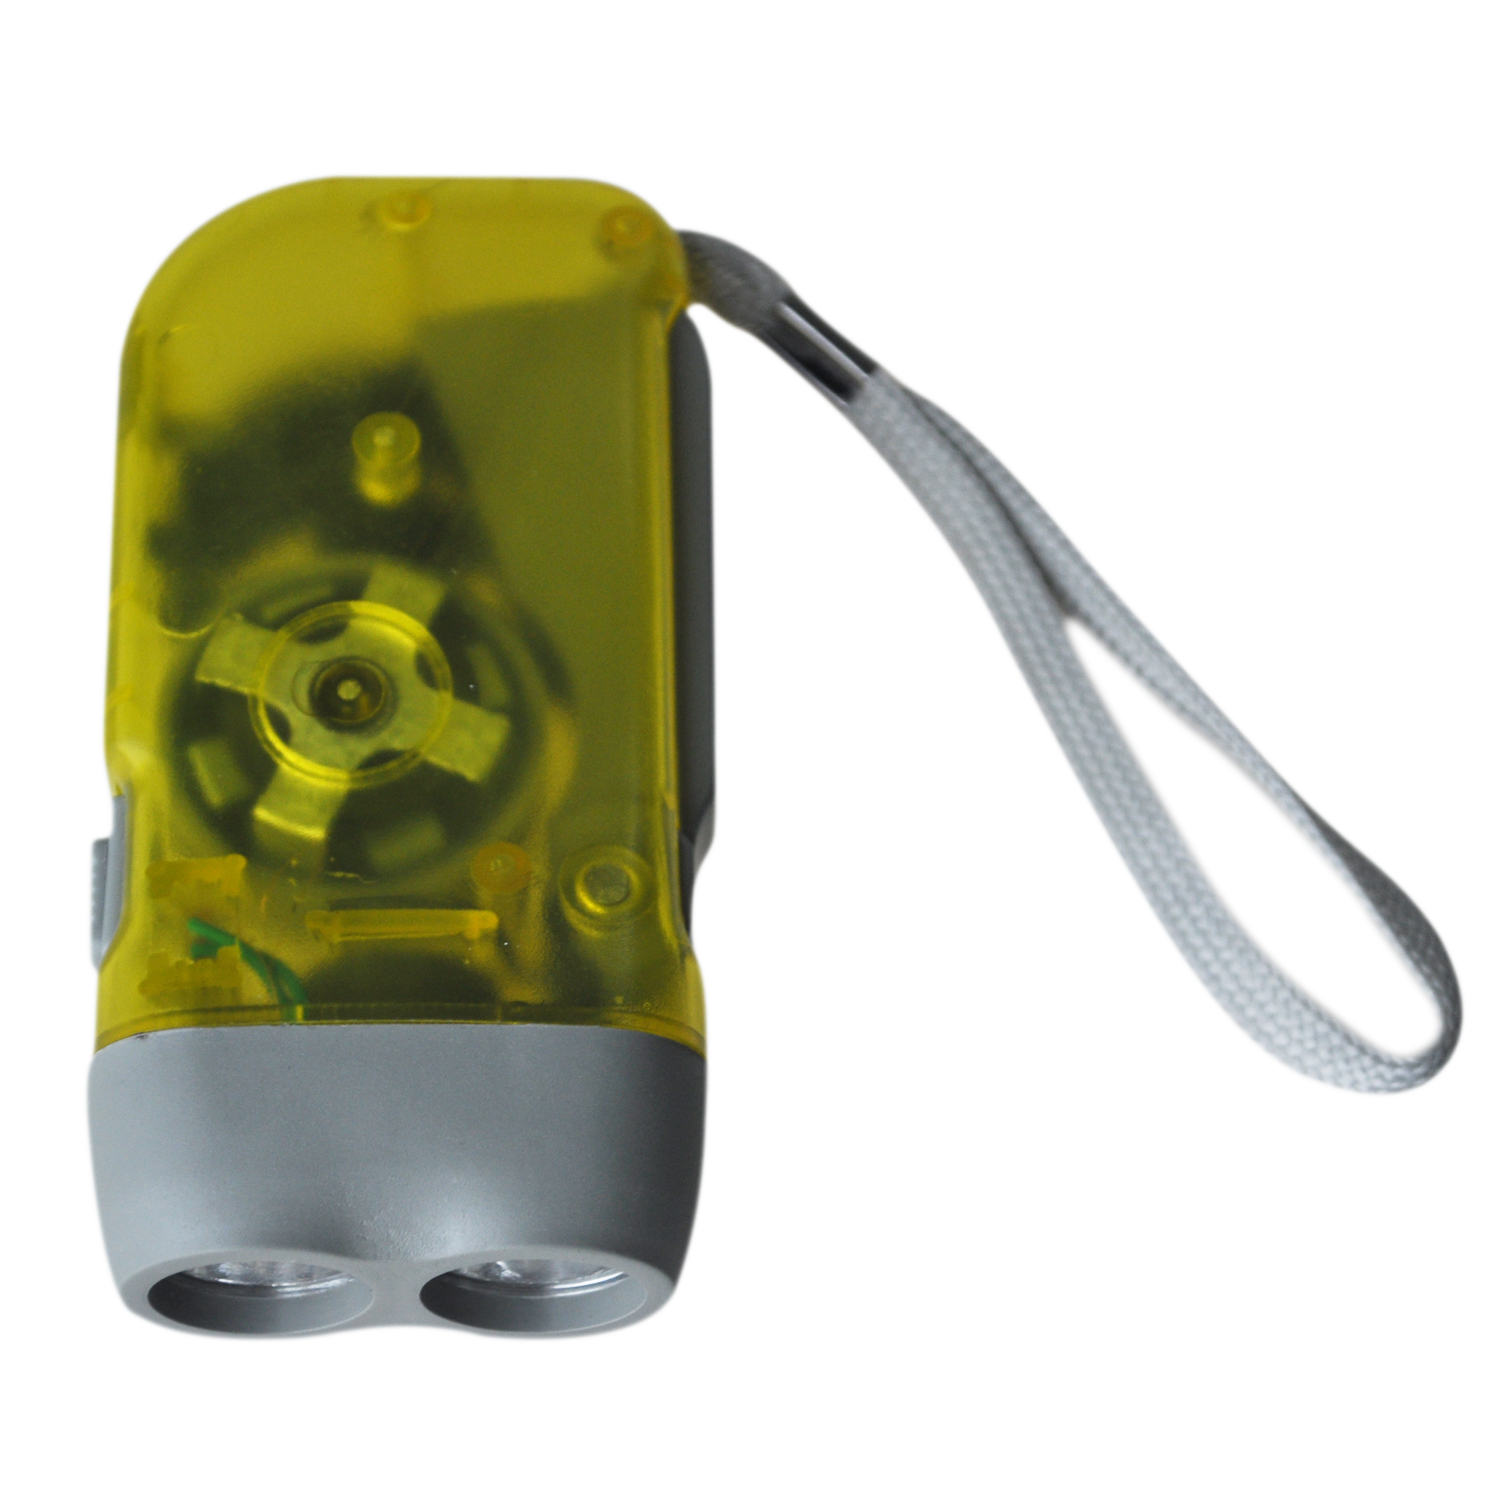 Torch Flashlight Dynamo 2 White LEDs For Camping